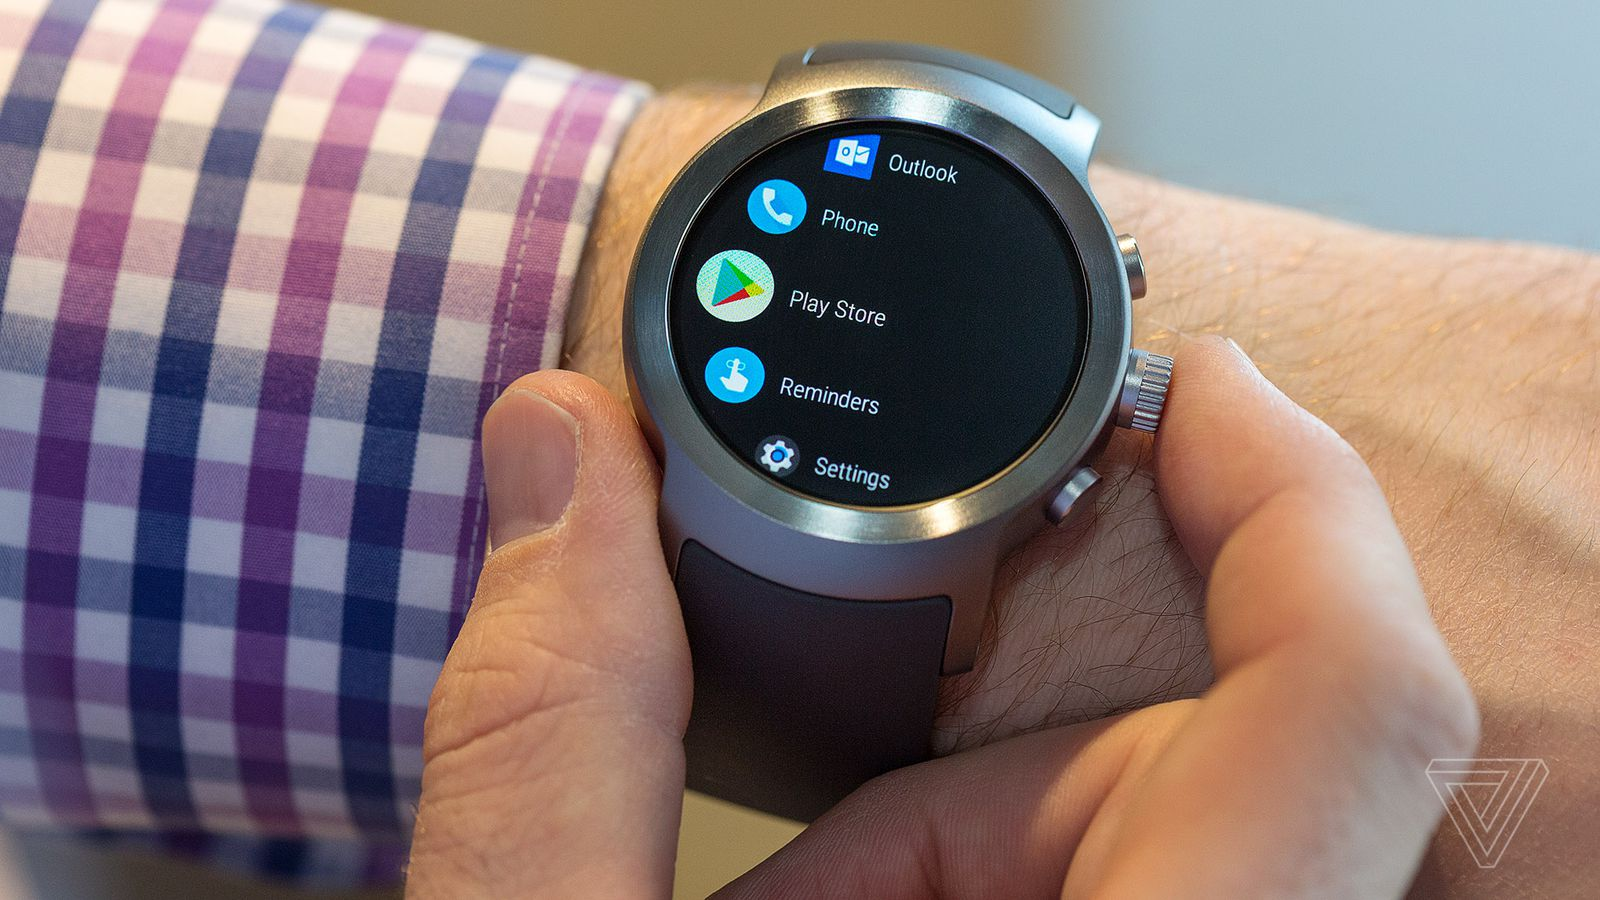 The 7 Best New Features in Android Wear 2.0 Watches